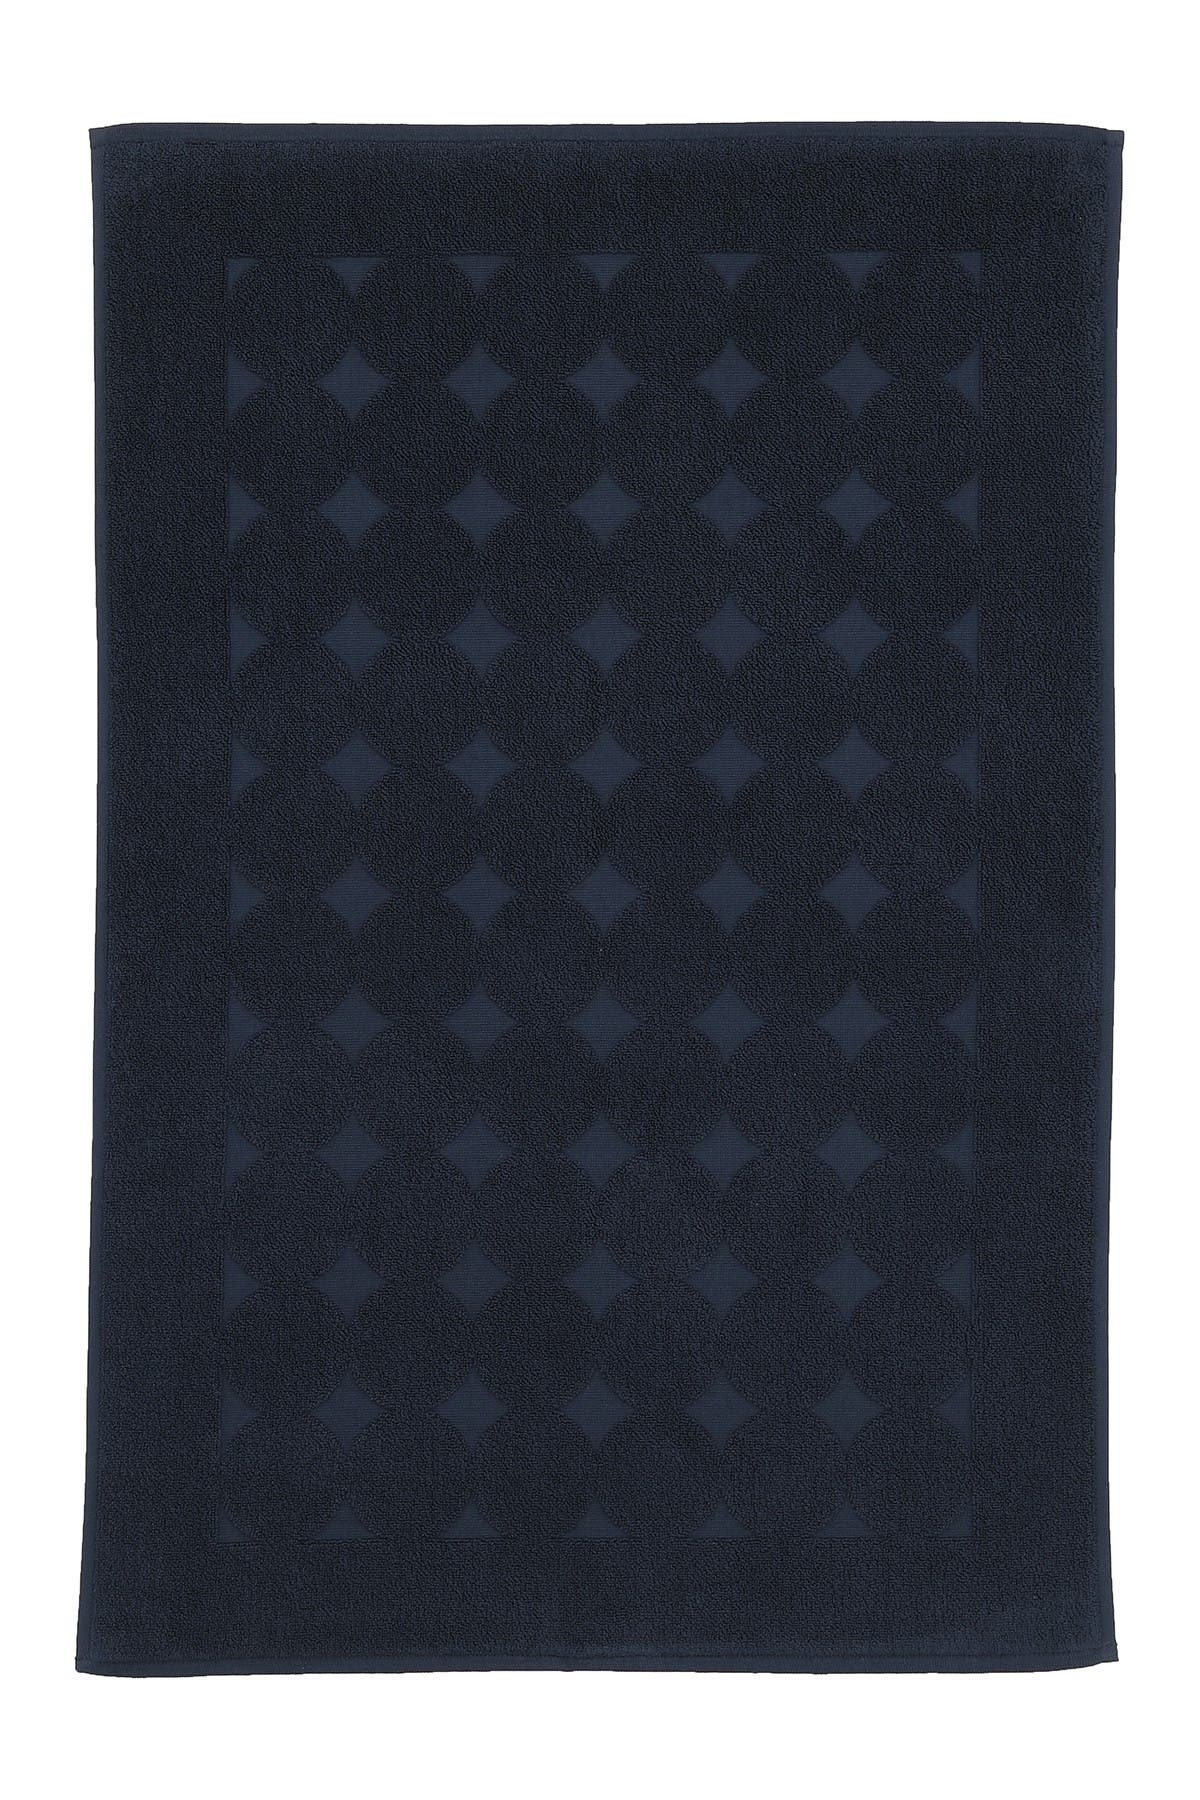 Image of LINUM HOME Sinemis Circle Design Bath Mat - Navy